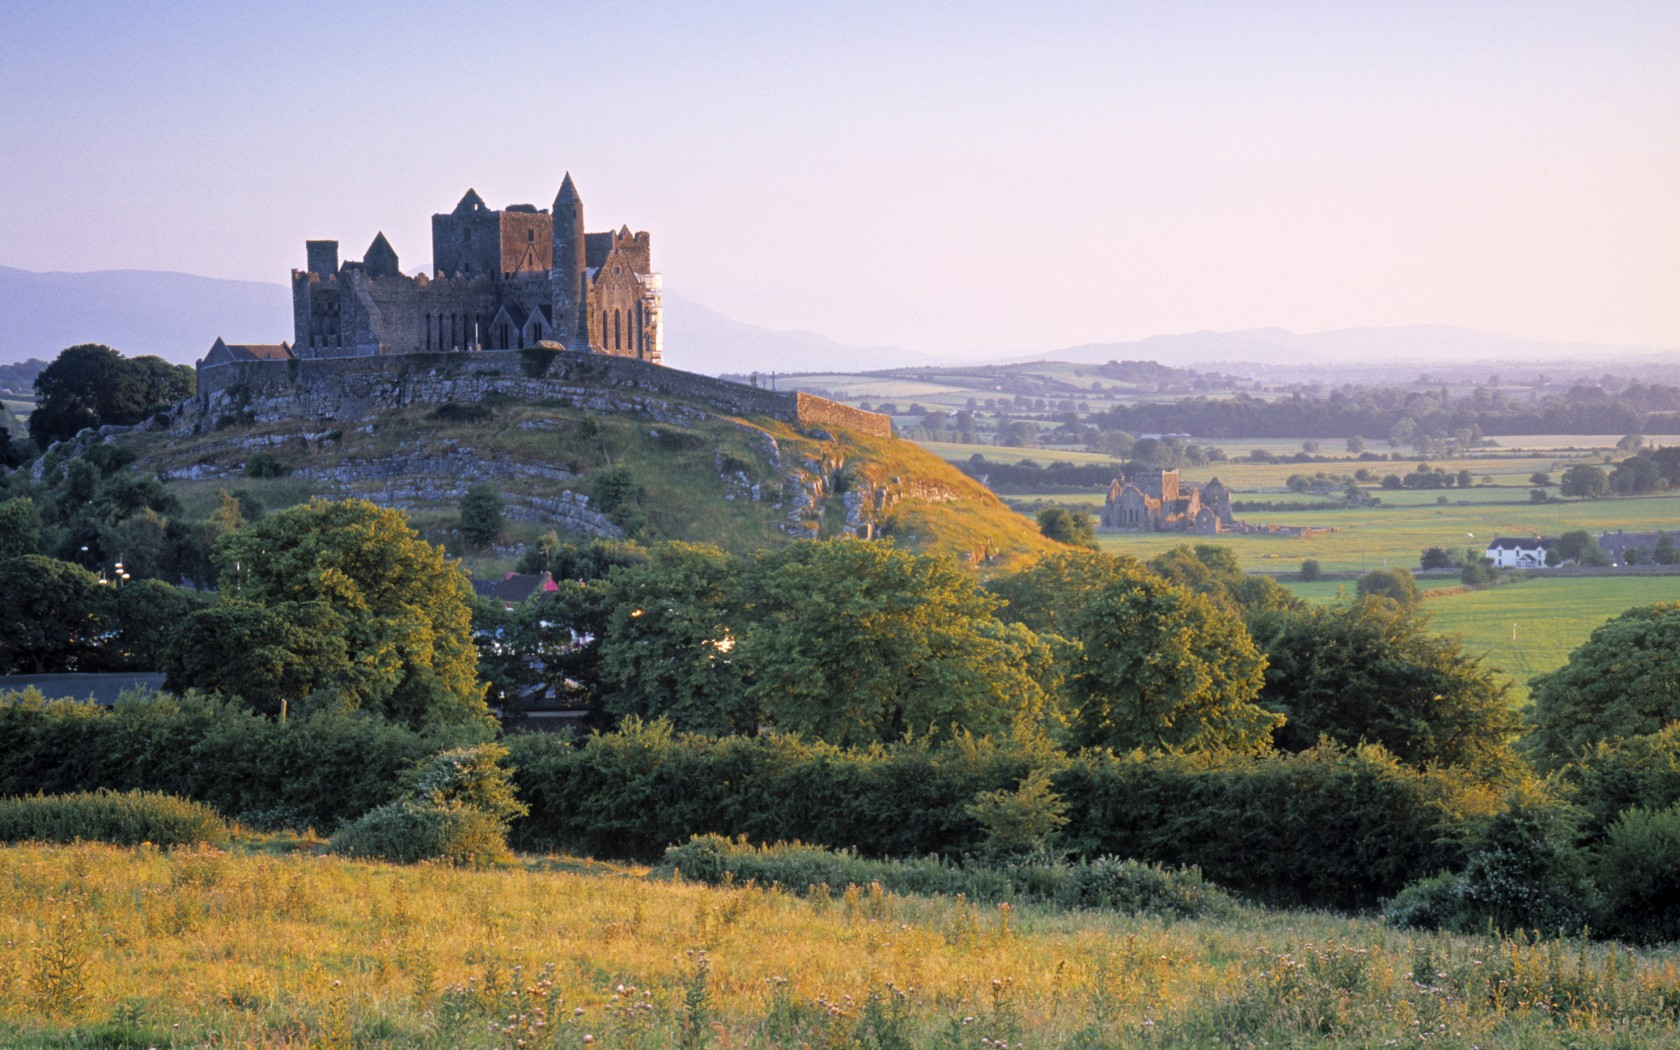 resized-AWL_IE02120RockofCashel-1680x1050